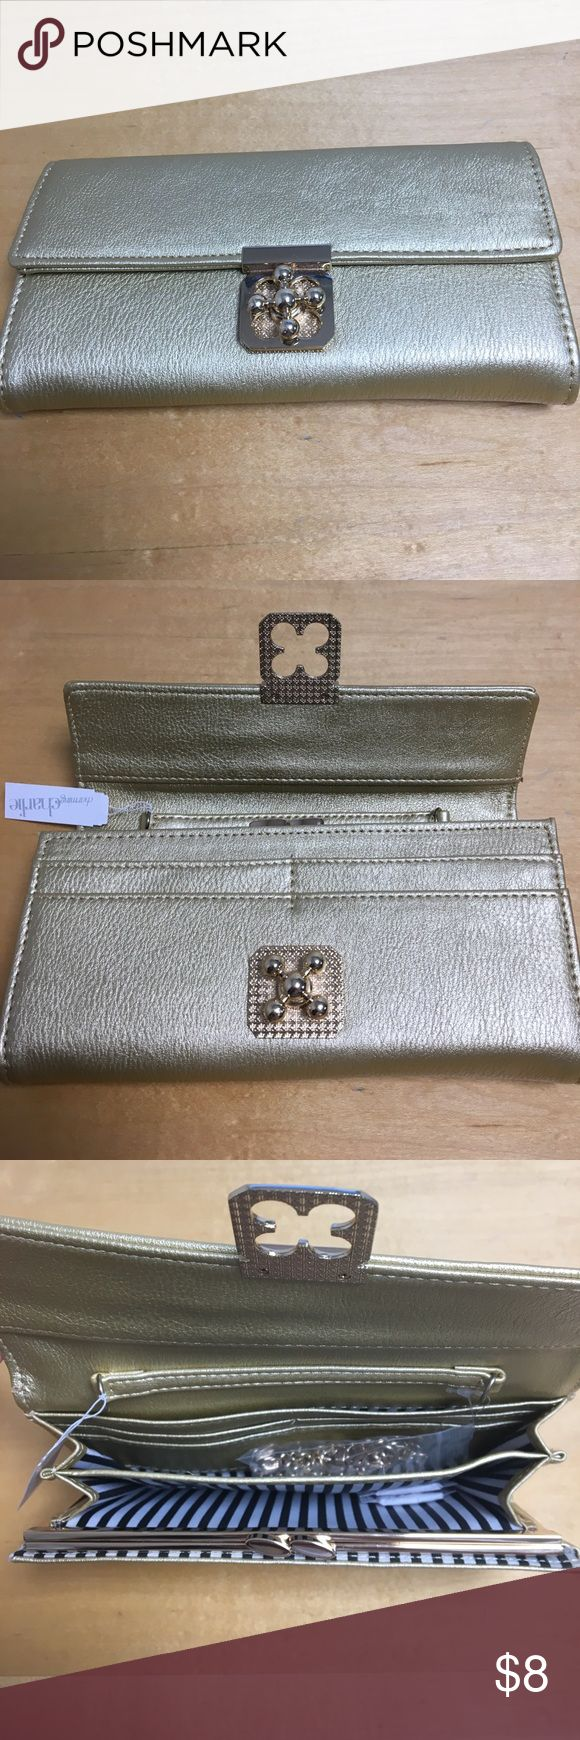 NWT Charming Charlie Gold Wallet with Chain NWT Charming Charlie gold wallet with drop down chain. Neat front clasp. Never been used. Charming Charlie Bags Wallets